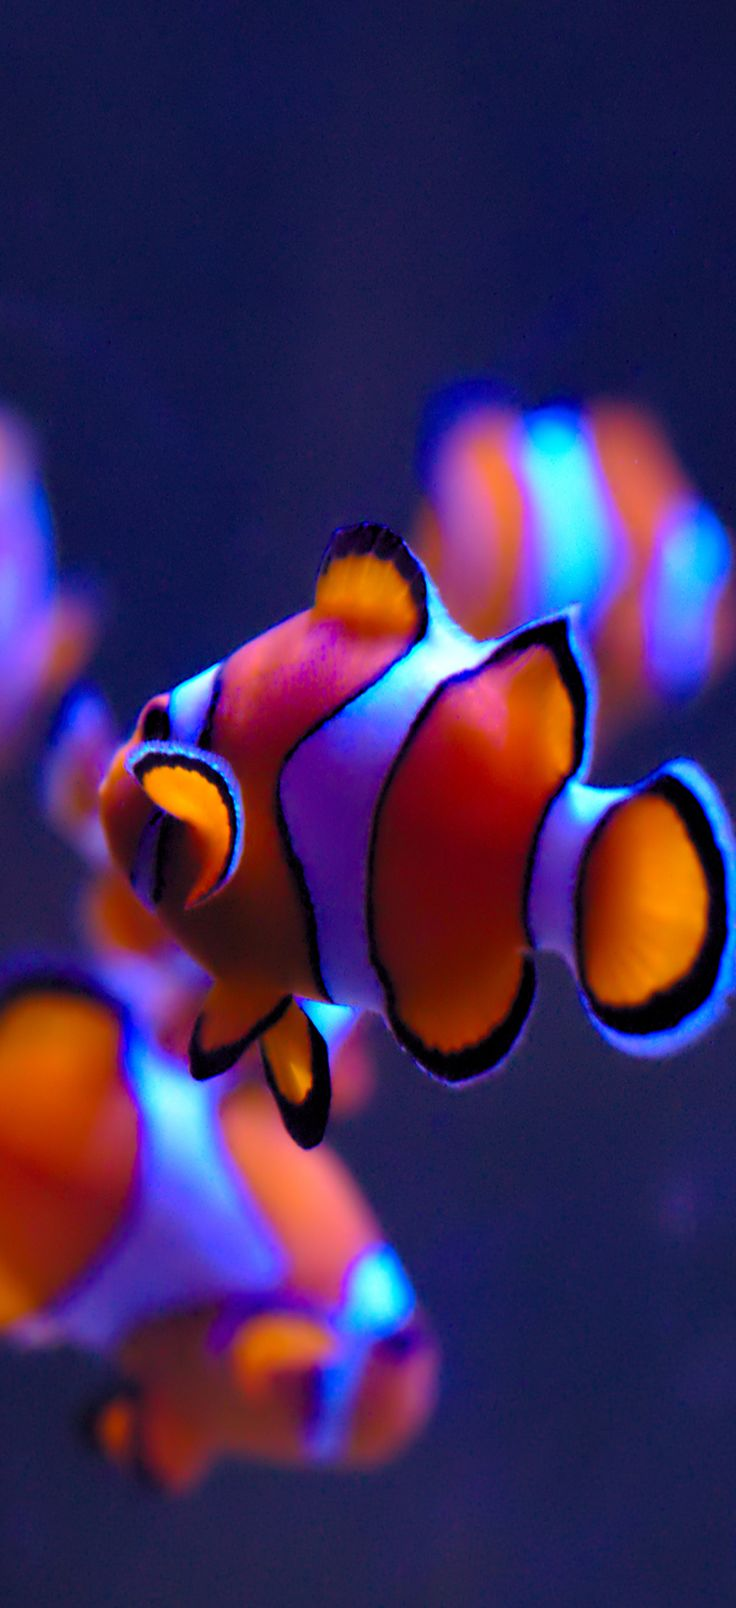 iOS 11, clownfish, orange, blue, water, apple, wallpaper